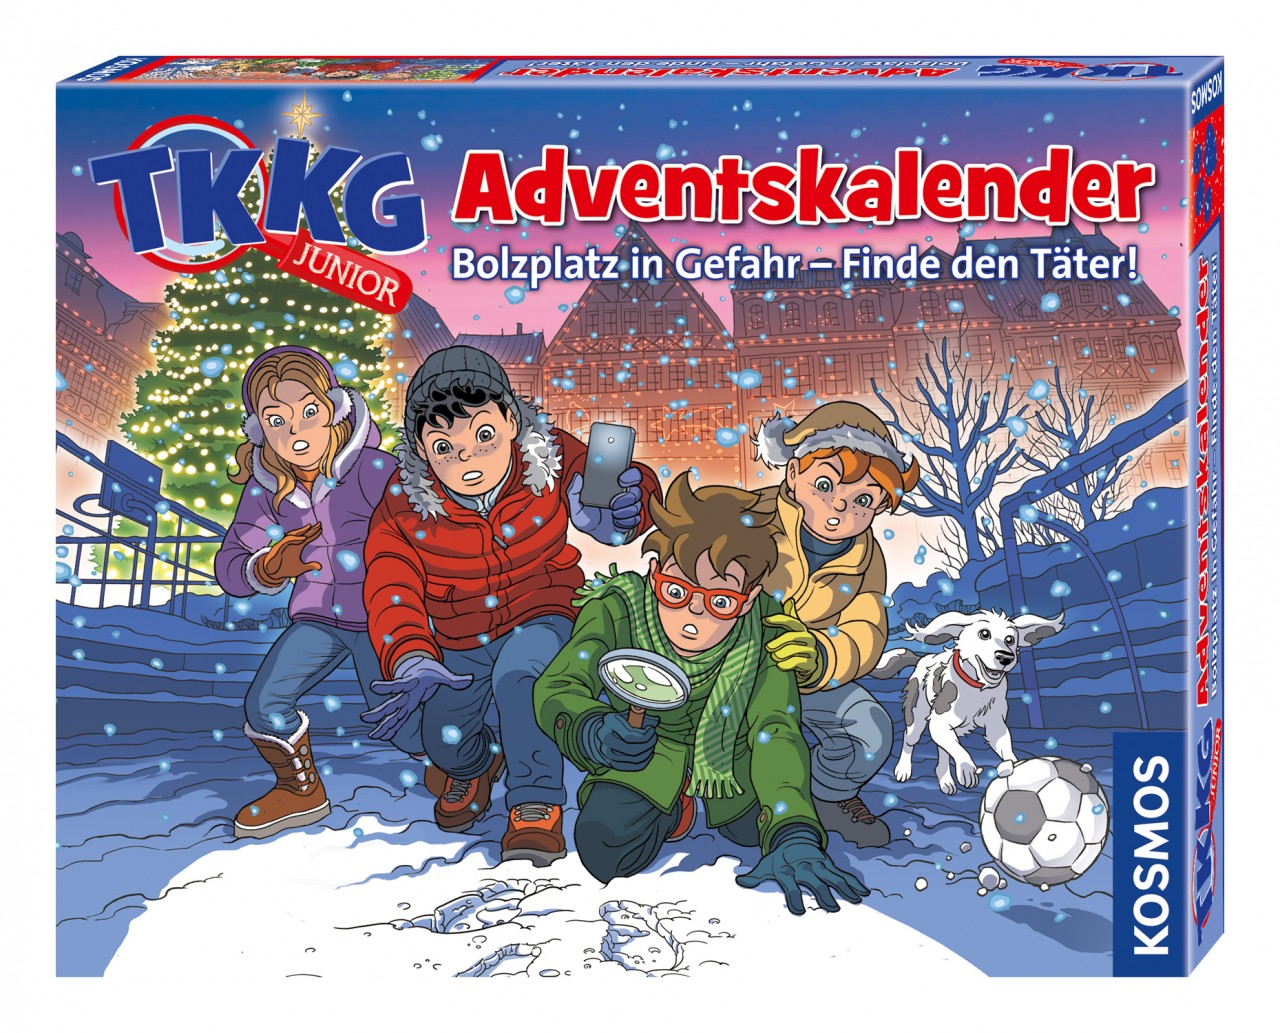 Adventskalender Bild Tkkg Junior Adventskalender